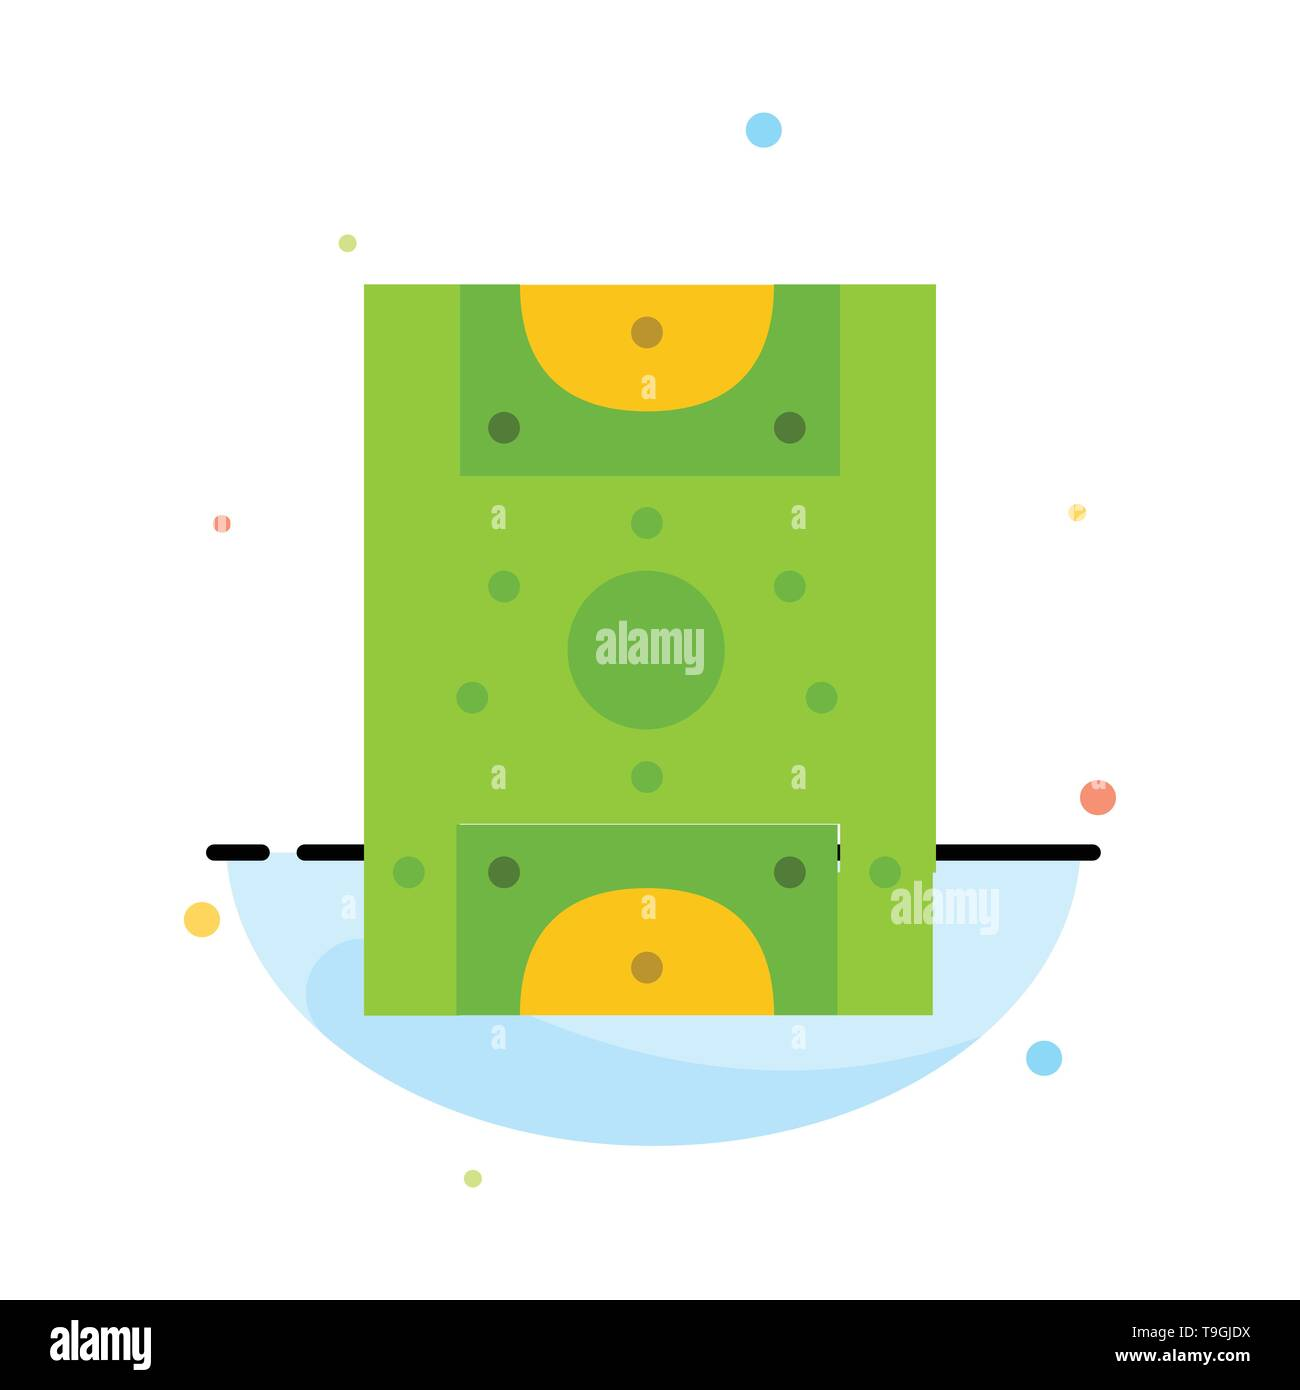 Entertainment, Game, Football, Field Abstract Flat Color Icon Template - Stock Image